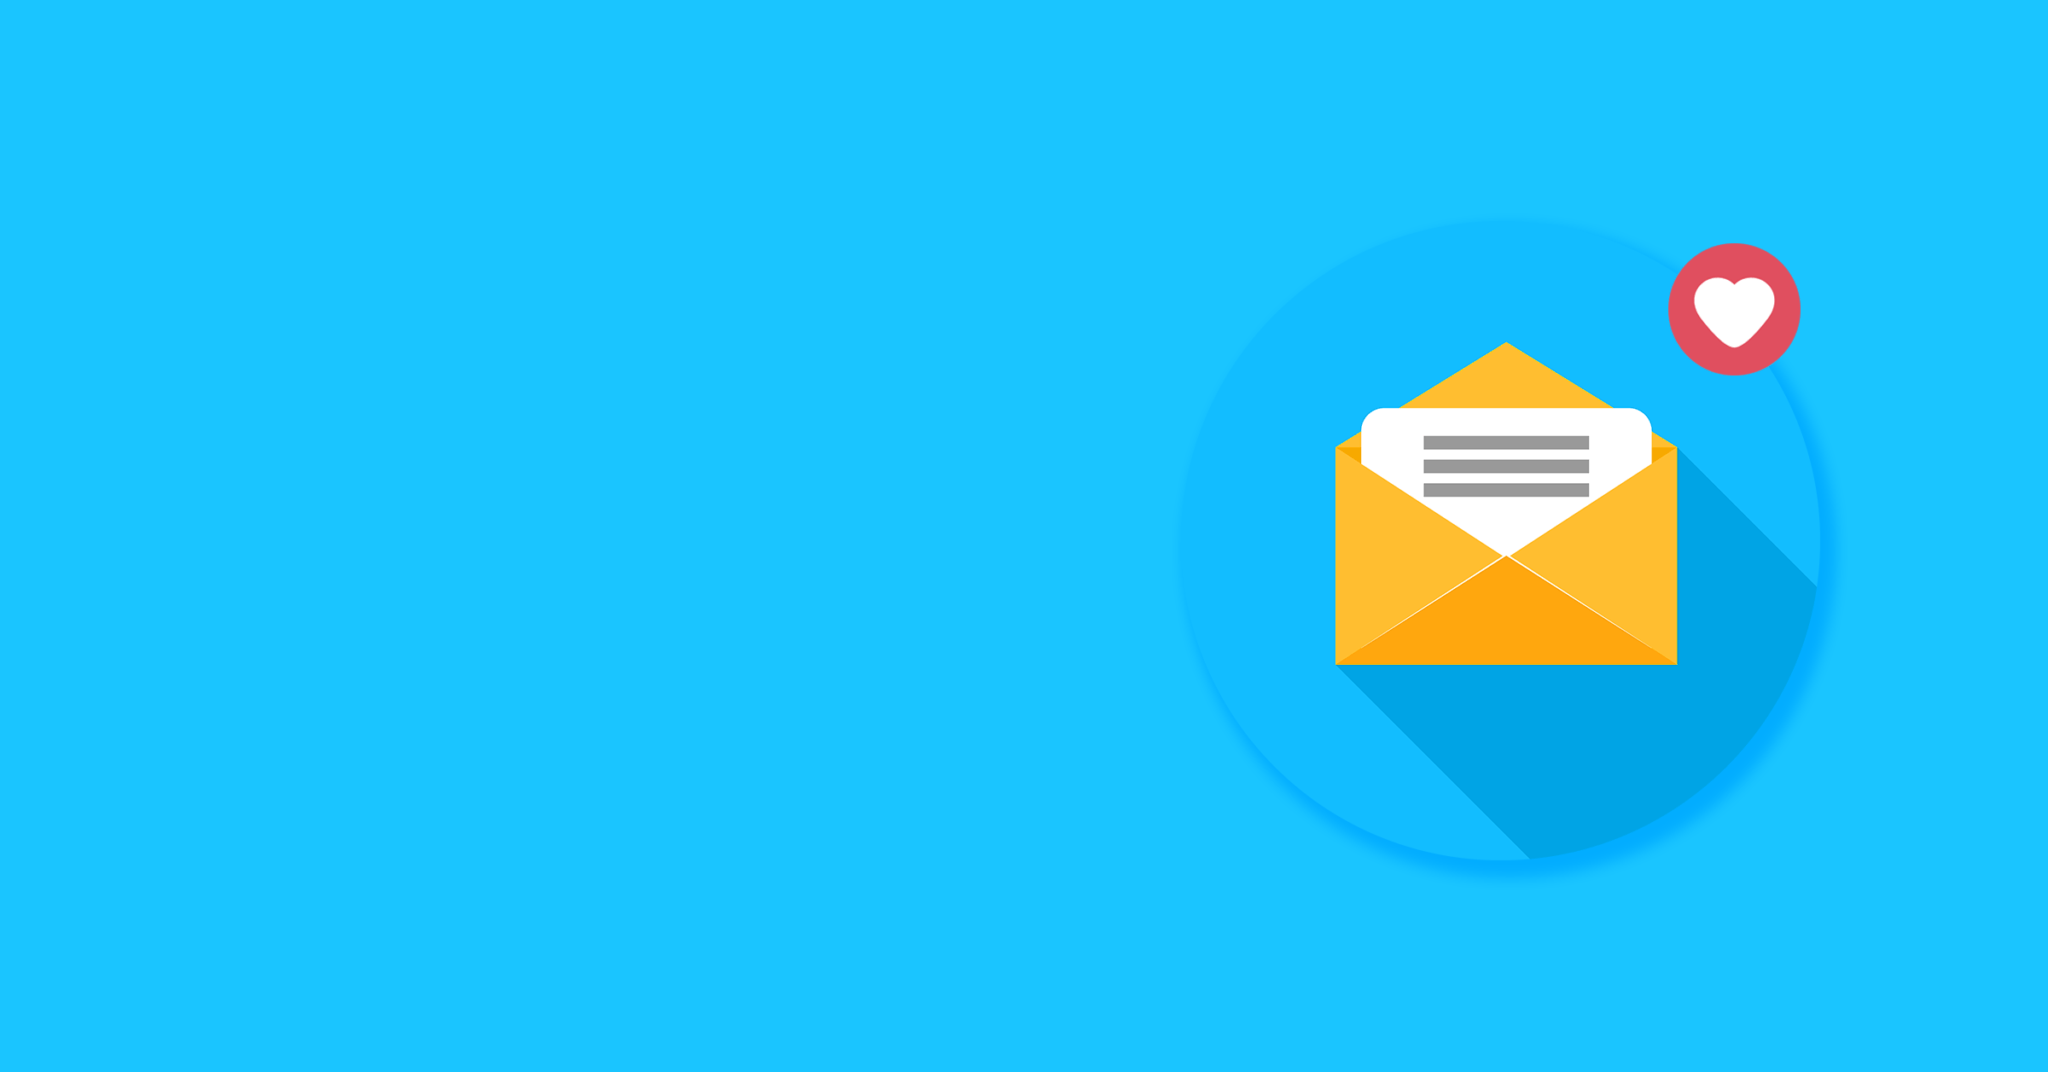 How To Add A Email Link In Convertkit